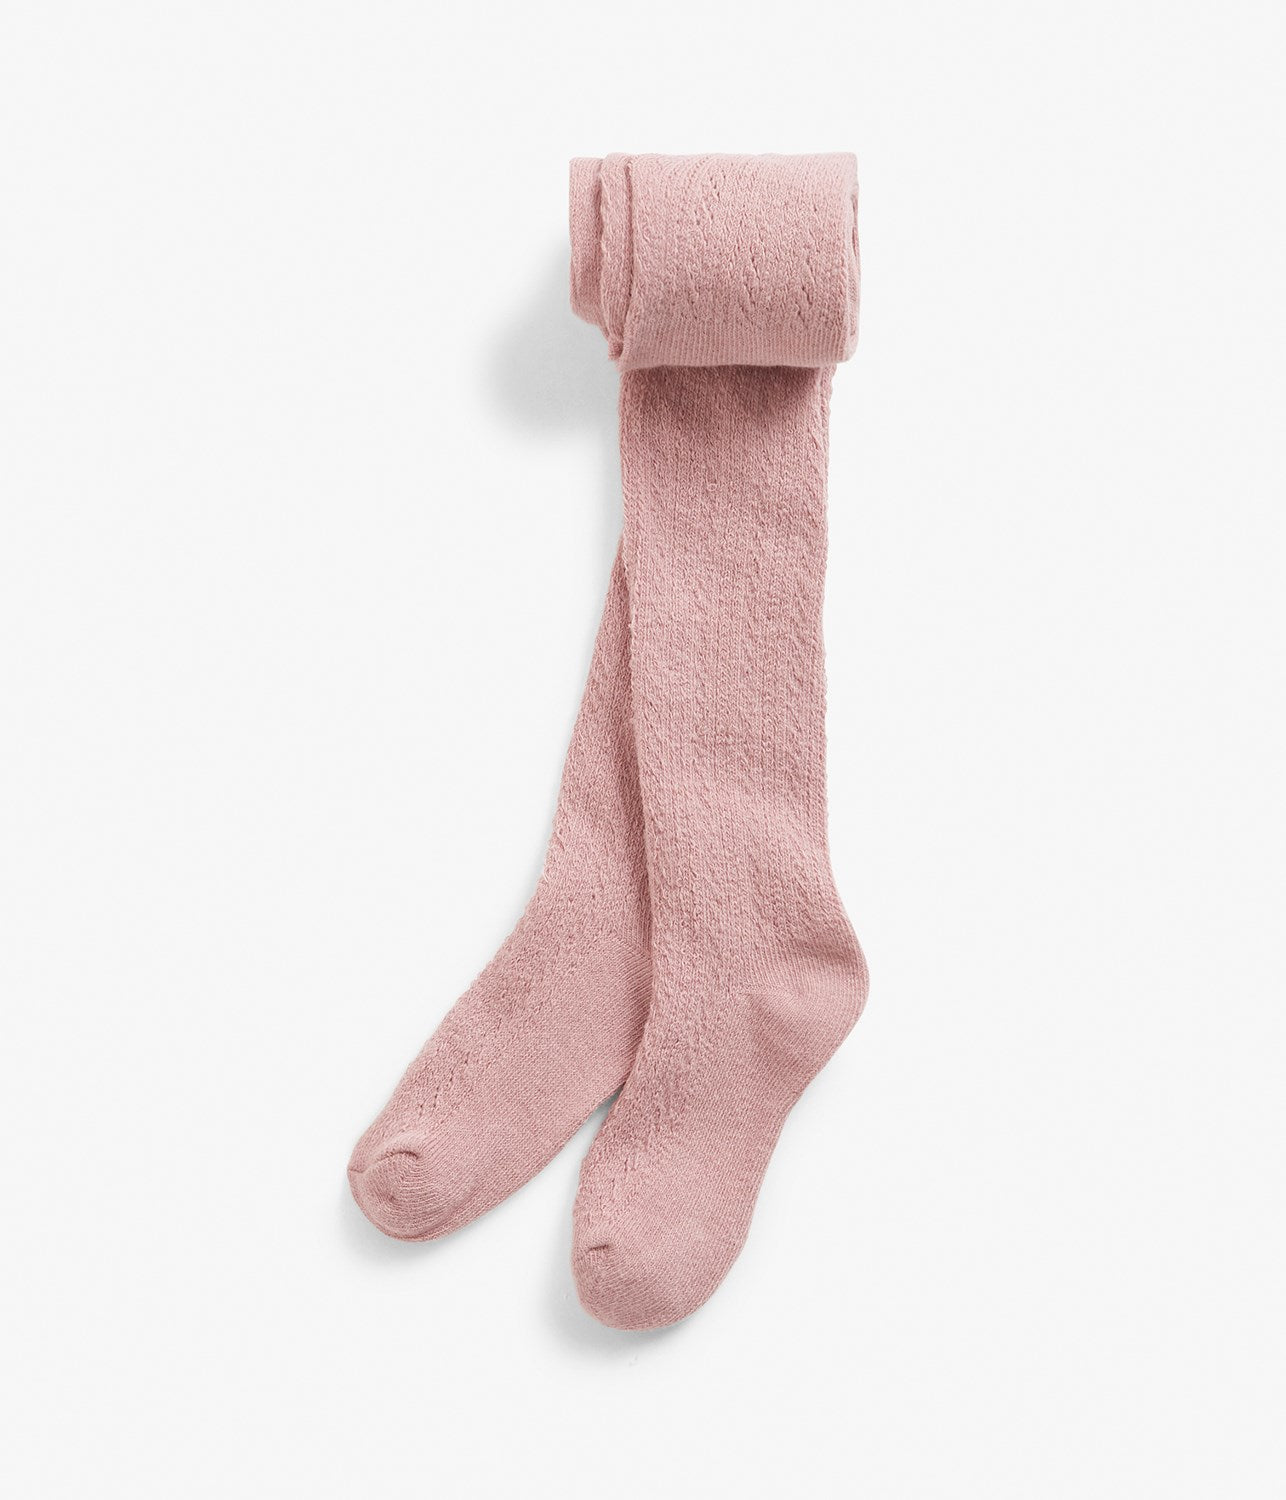 Kids pink knitted socks